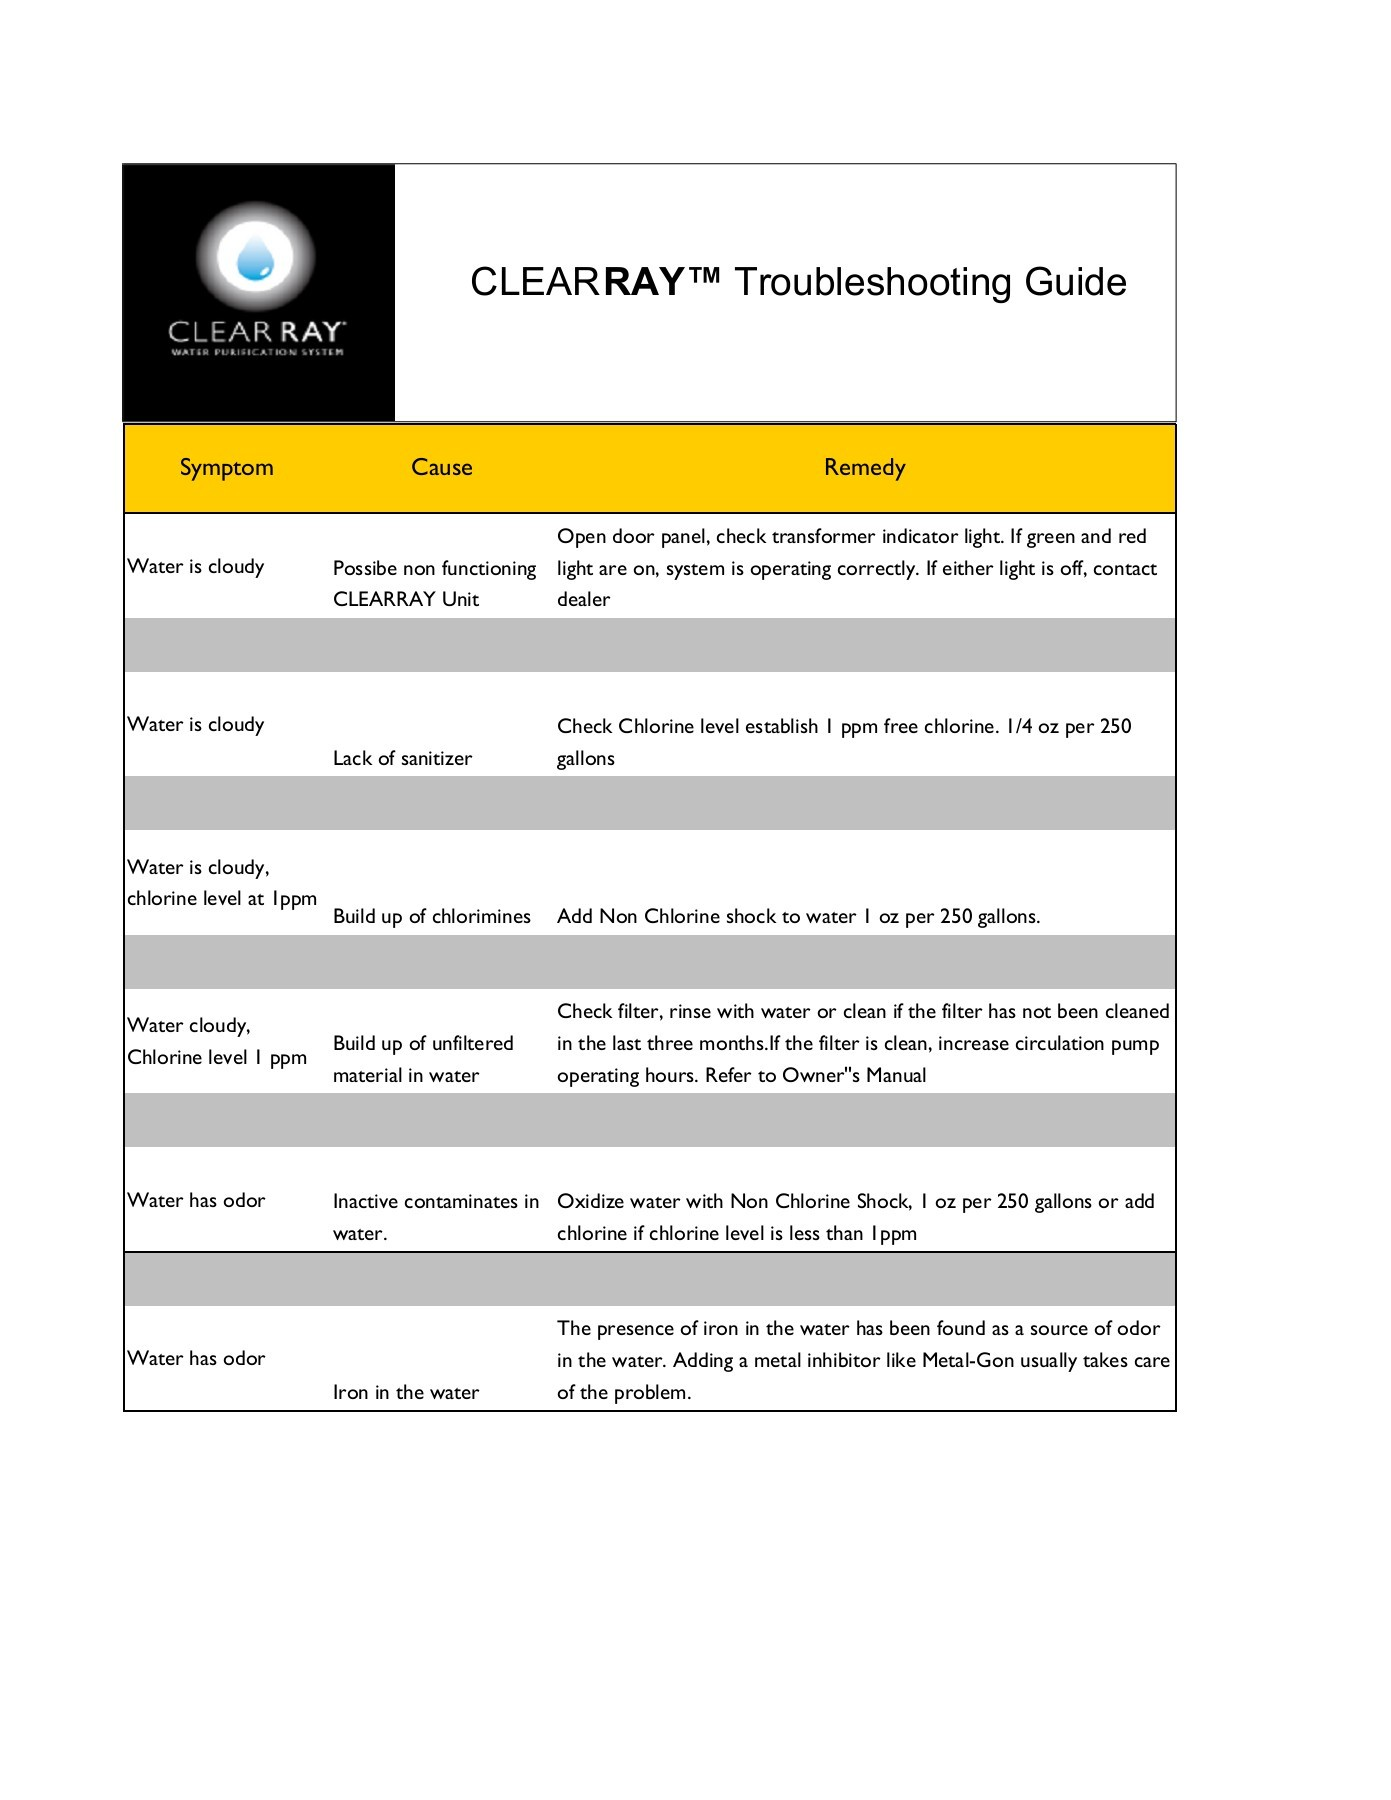 Jacuzzi Pool Filter Manual Clearray Troubleshooting Guides For Jacuzzi Hot Tubs In On